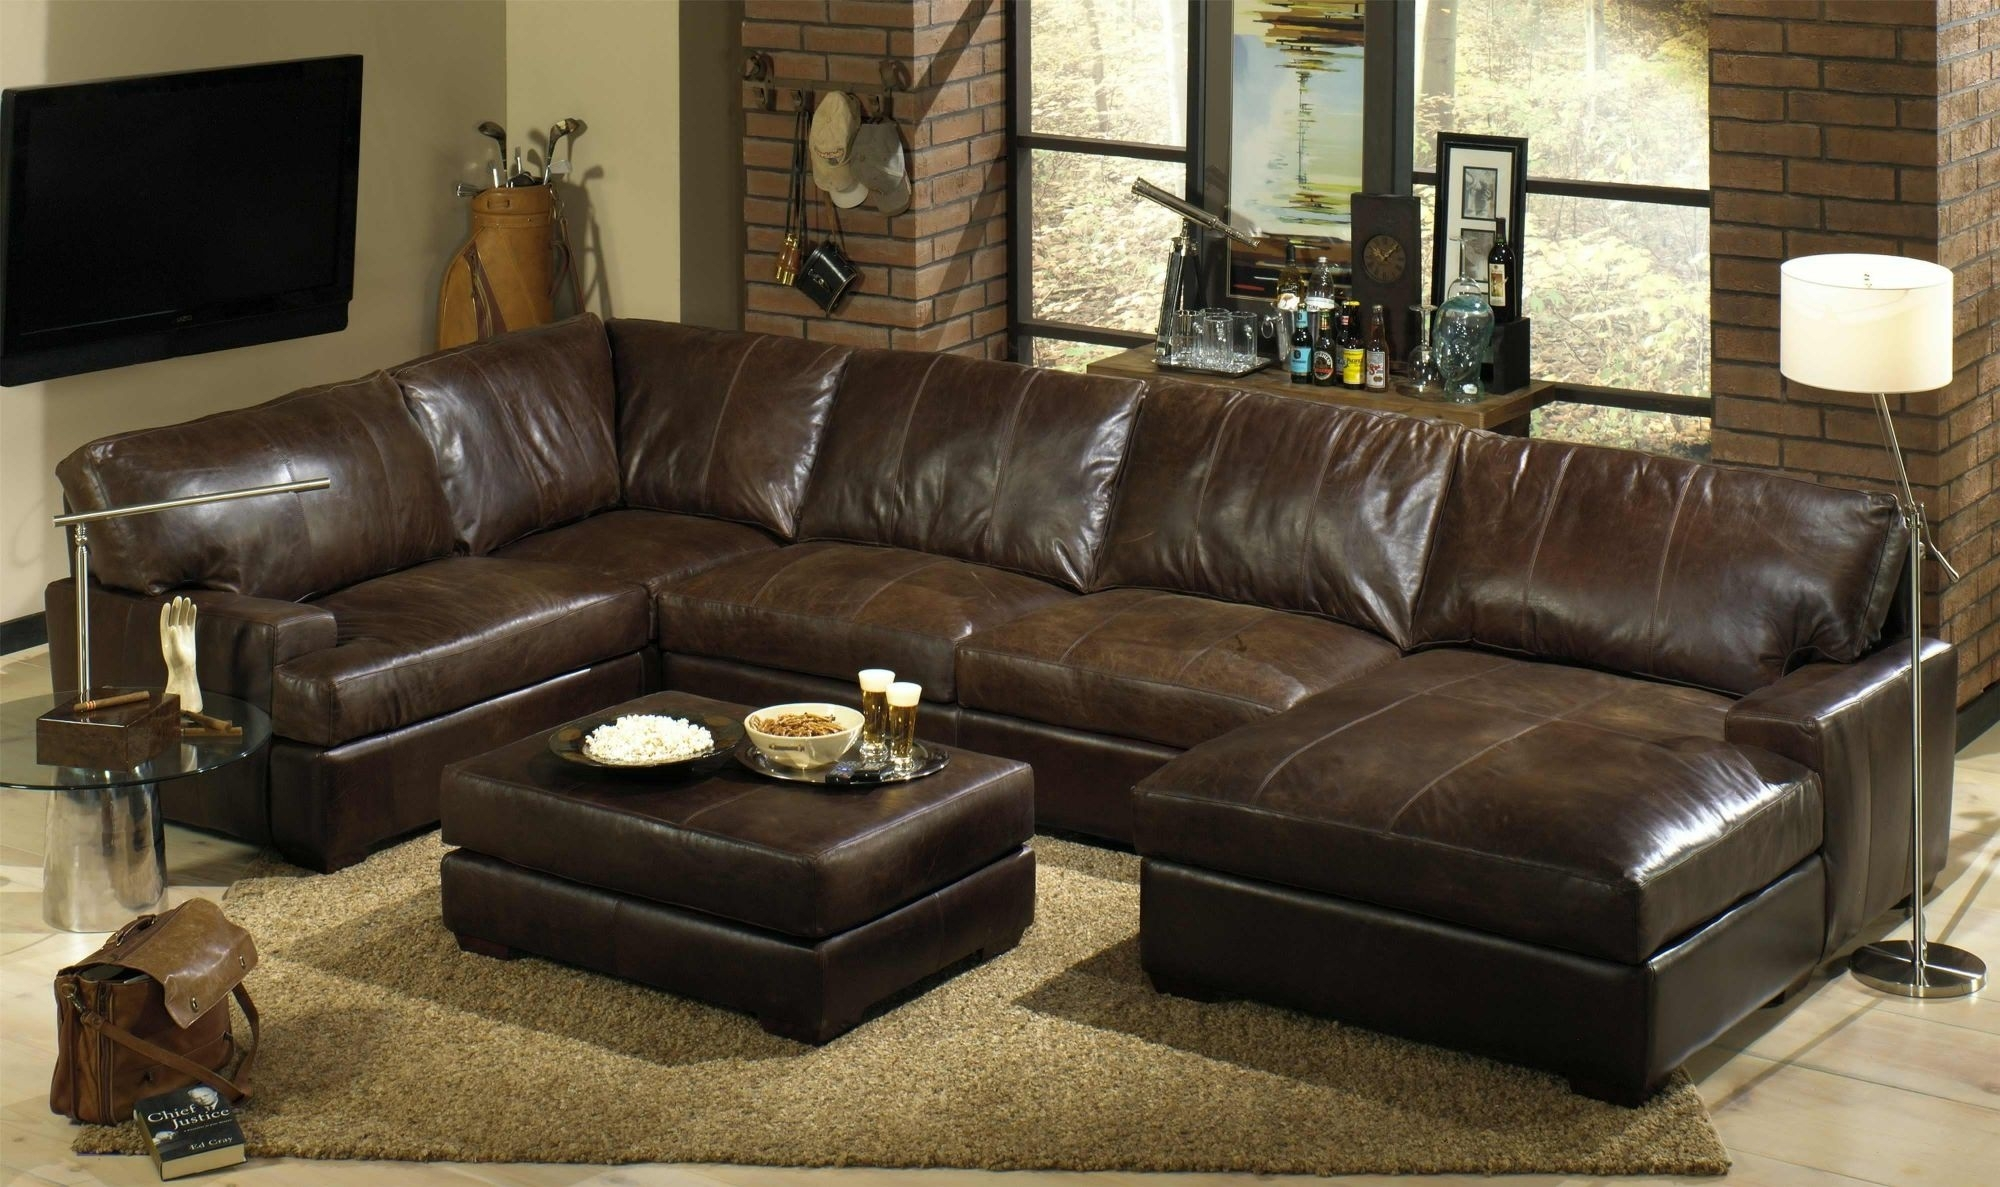 Amazing Sectional Sofa Design Small Leather Chaise Pict Of With Throughout Sectional Sofas With Recliners For Small Spaces (View 5 of 10)